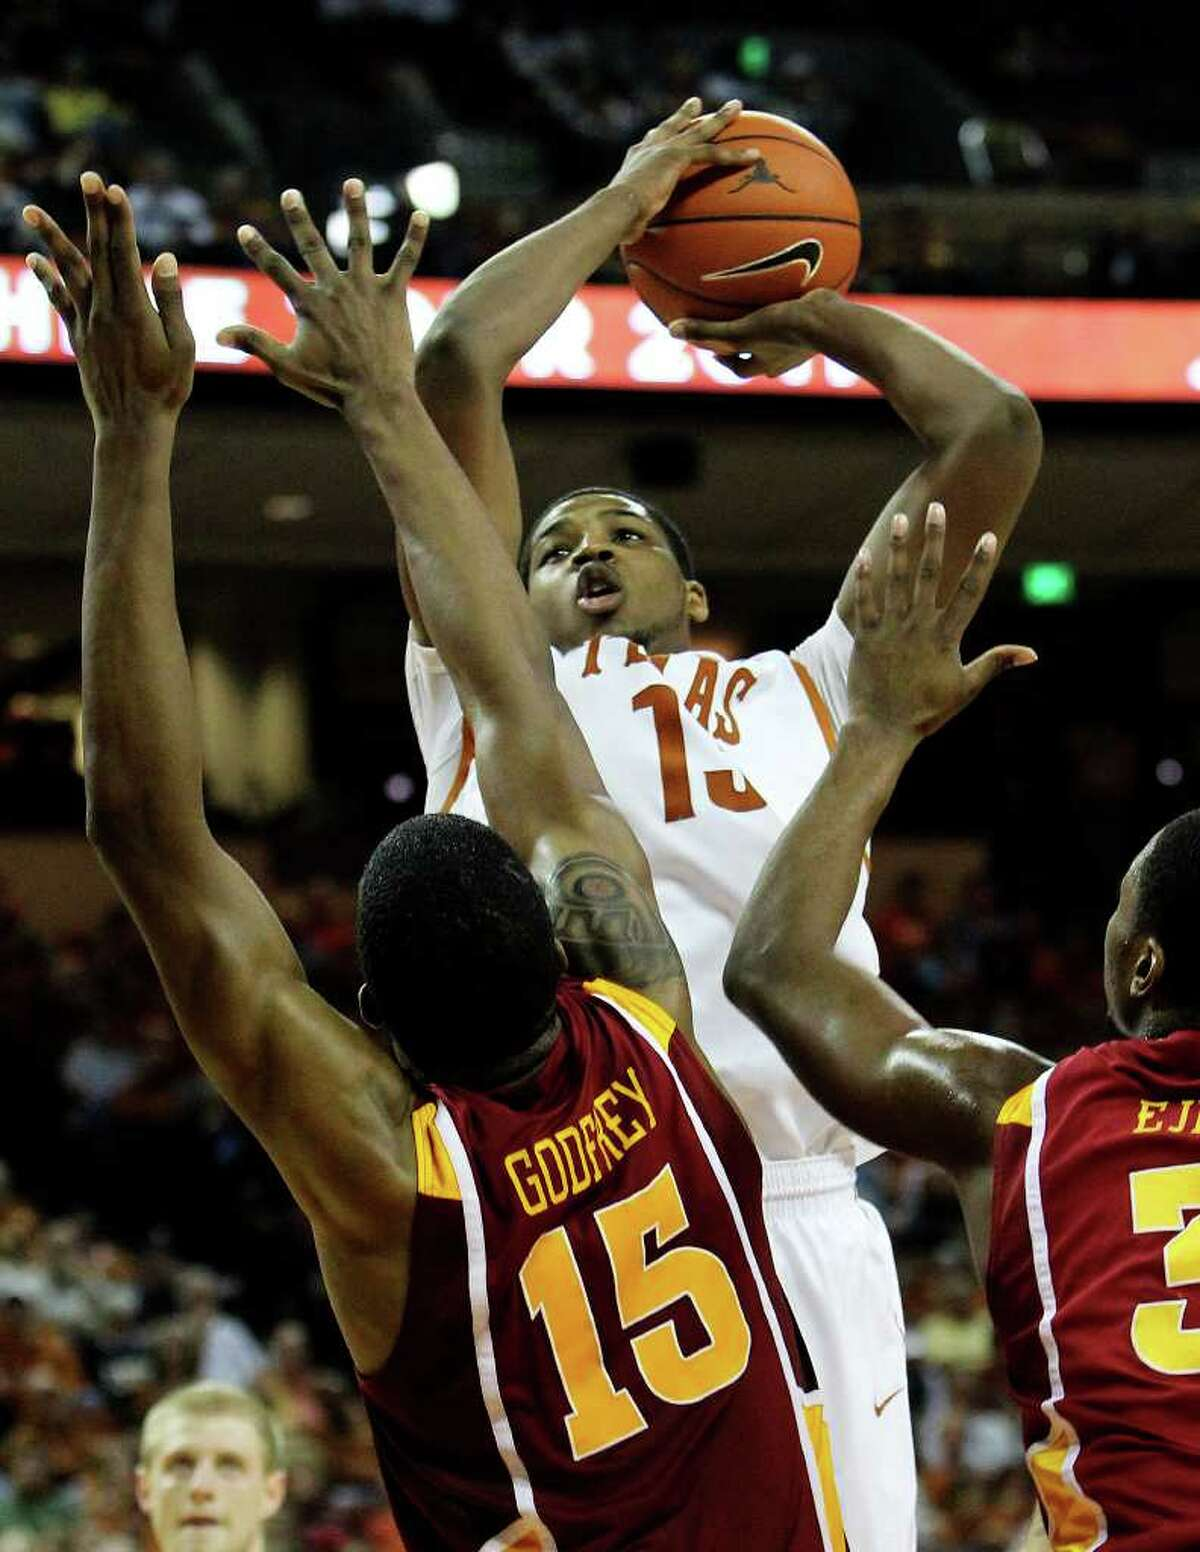 Texas Longhorns' Tristan Thompson (13) takes a shot against Iowa State's Calvin Godfrey (15) in the first half in men's basektball in Austin on Tuesday, Feb. 22, 2011. Kin Man Hui/kmhui@express-news.net